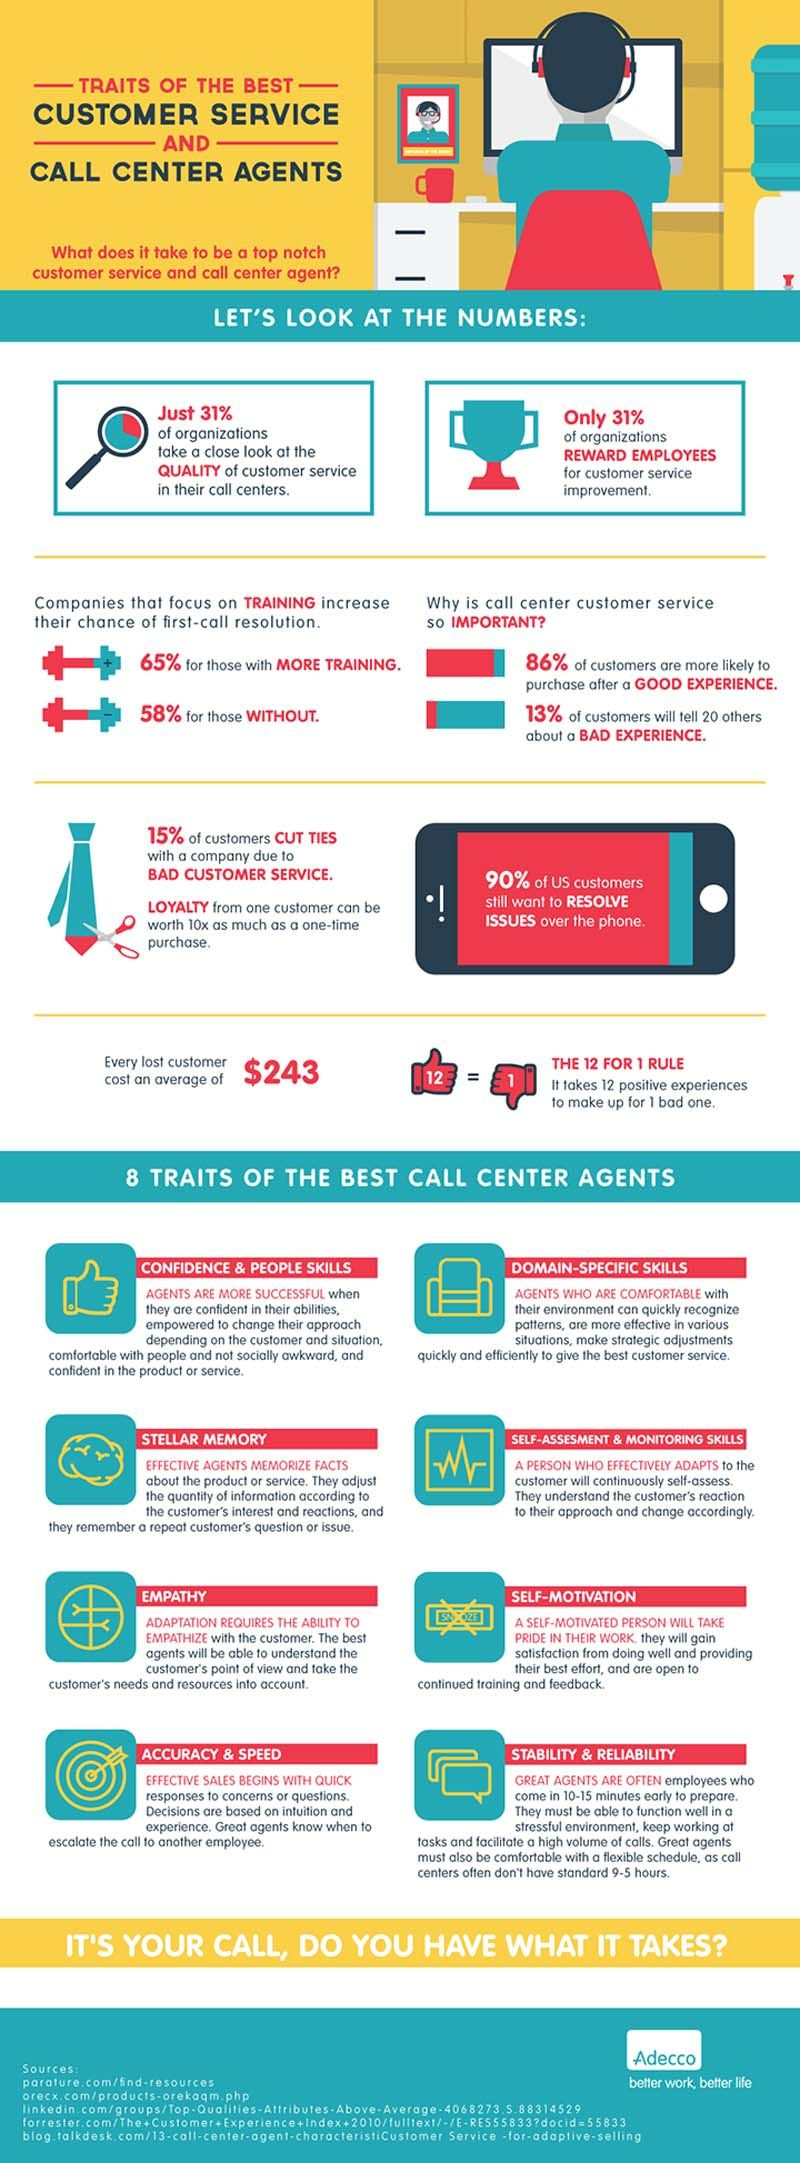 Infographic Traits of The Best Customer Service and Call